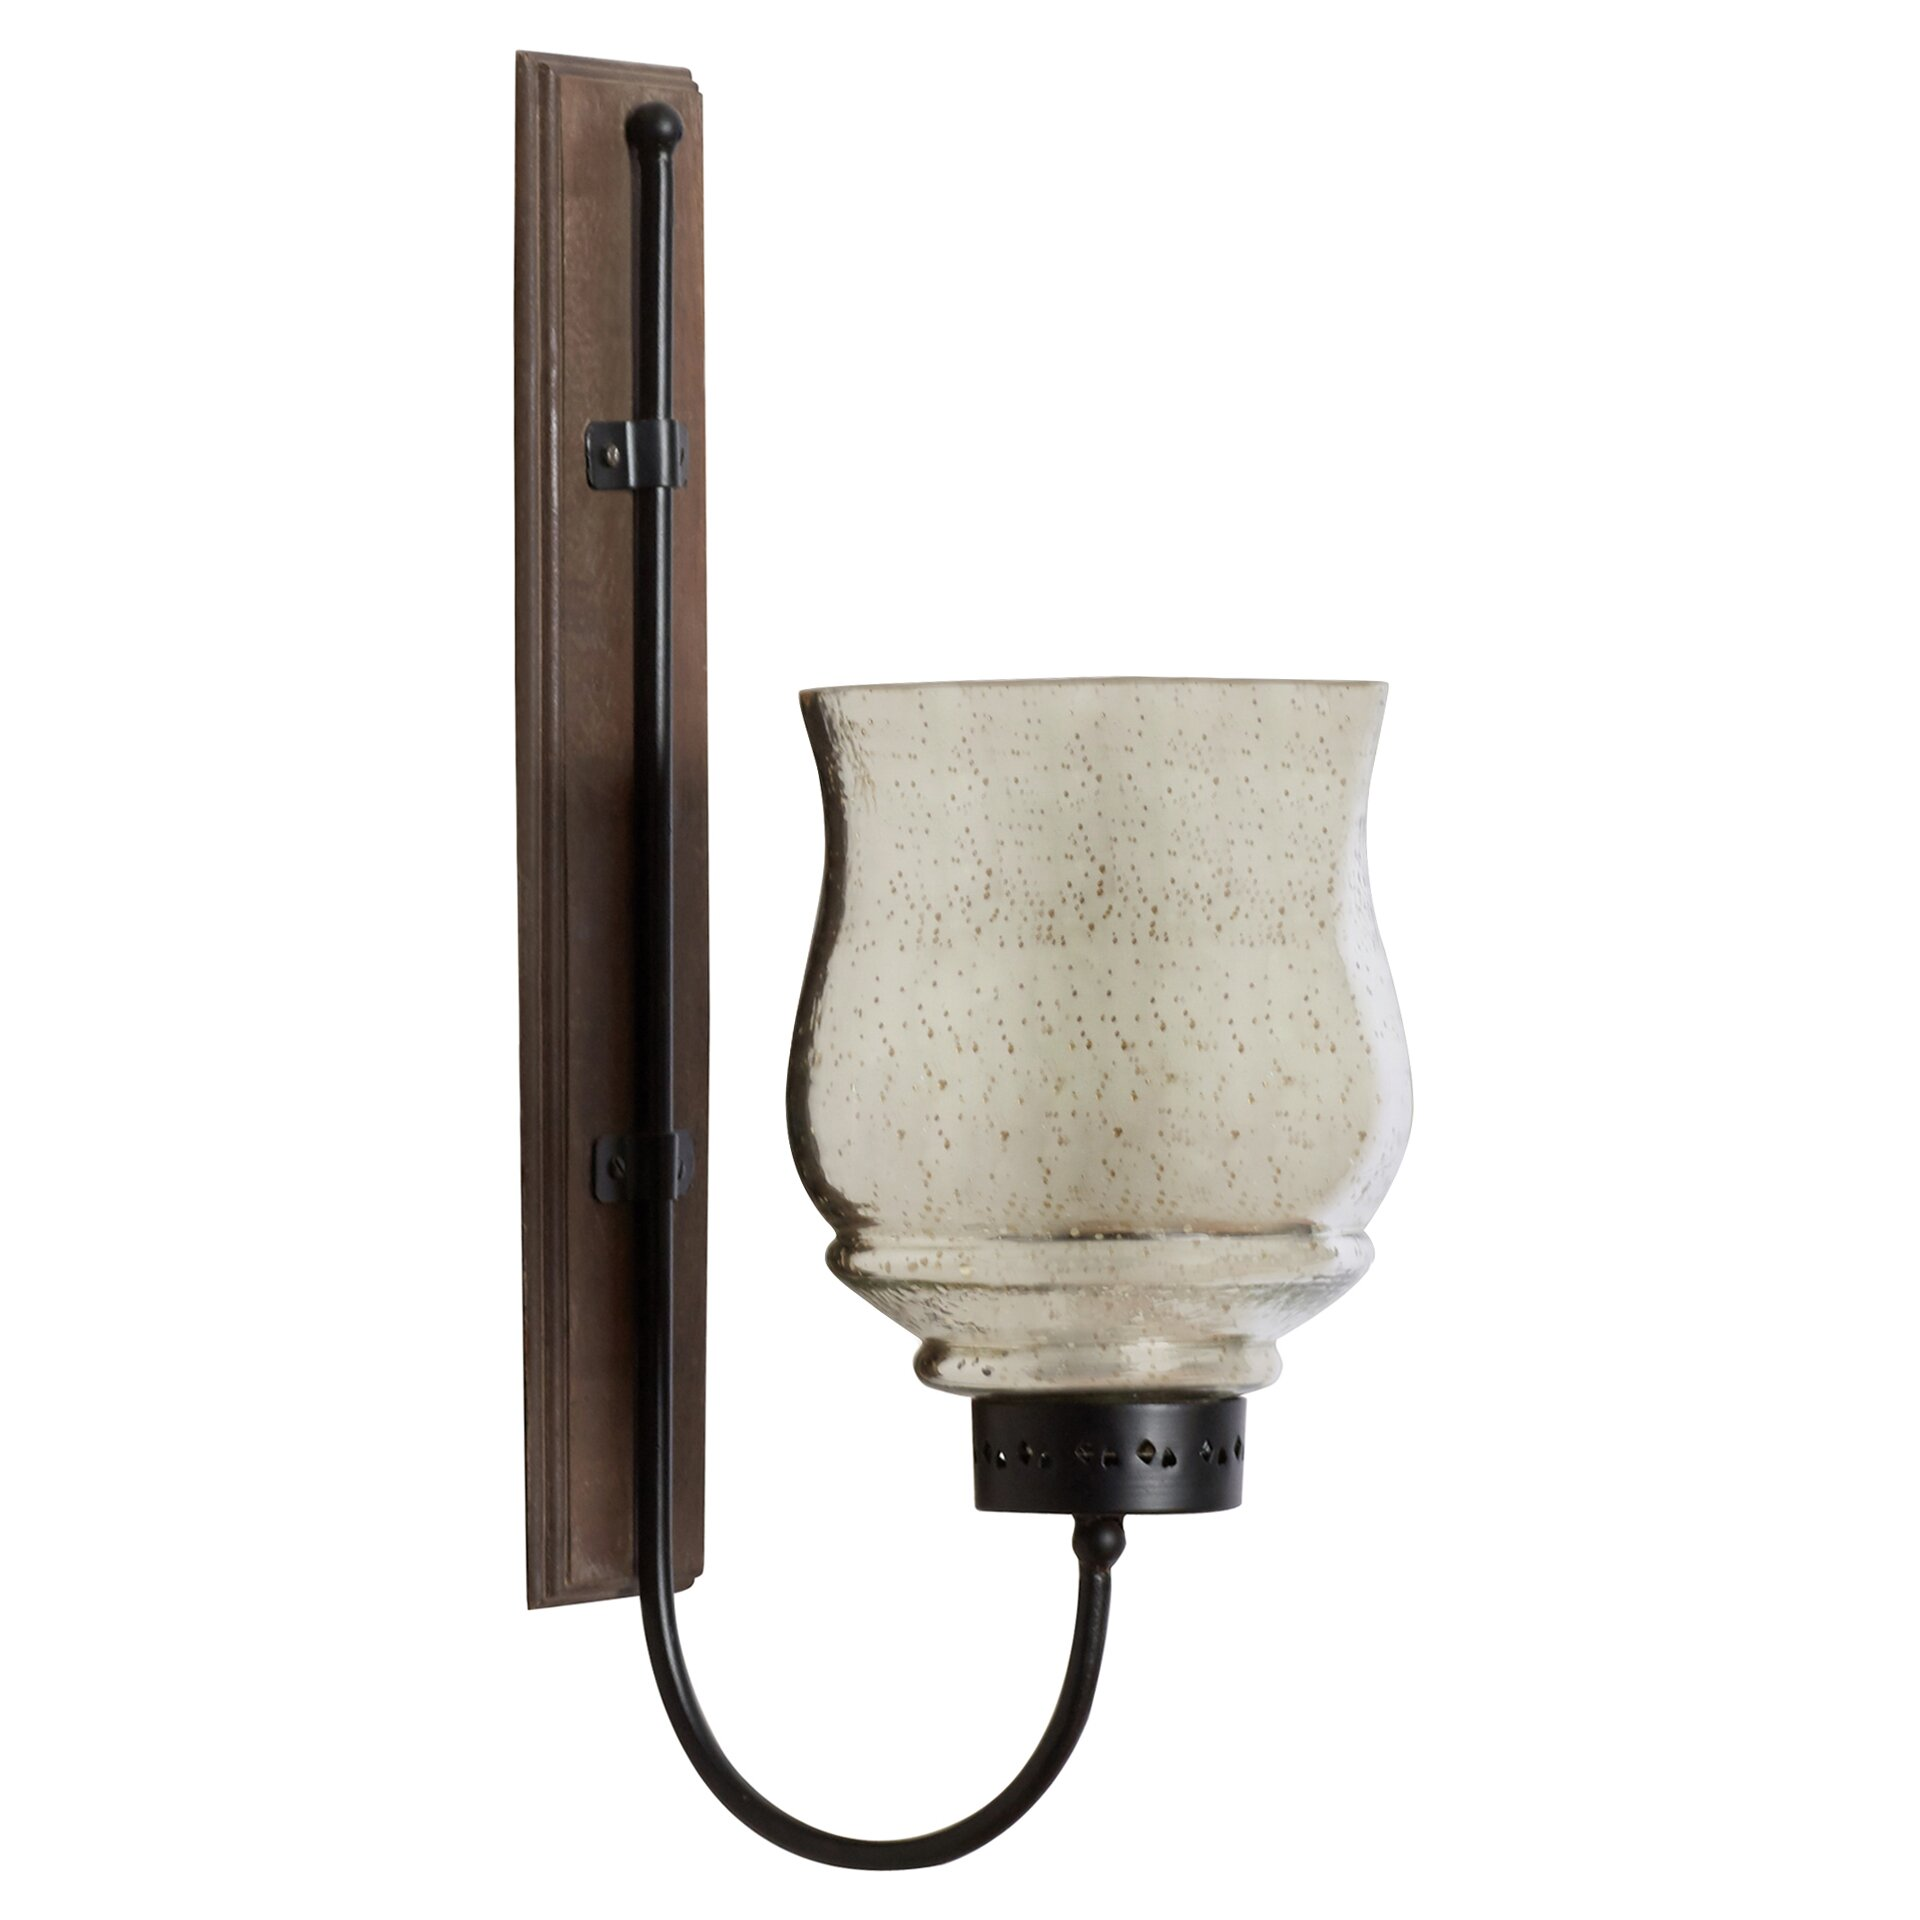 Alcott Hill Hicchecok Metal and Wood Wall Sconce & Reviews ... on Wood And Metal Wall Sconces id=25442